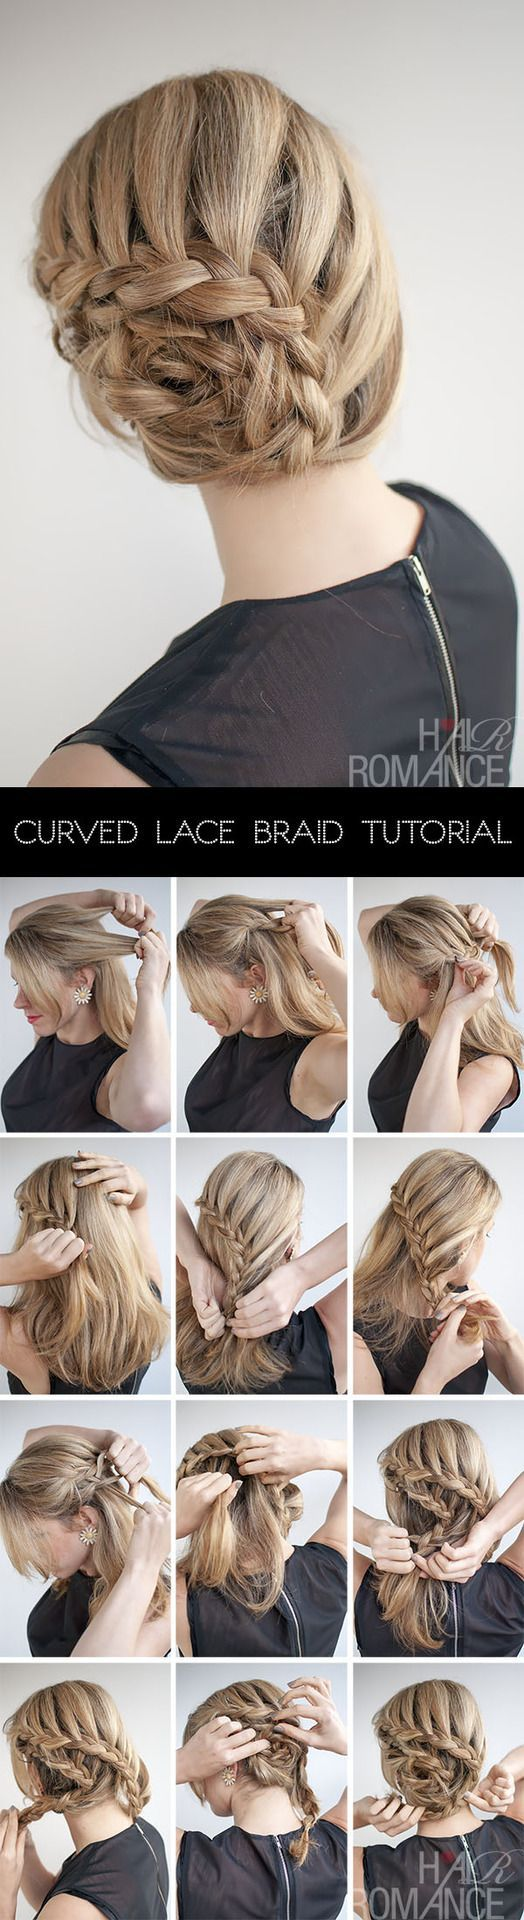 19 Fabulous Braided Updo Hairstyles With Tutorials Pretty Designs Hair Romance Hair Styles Long Hair Styles